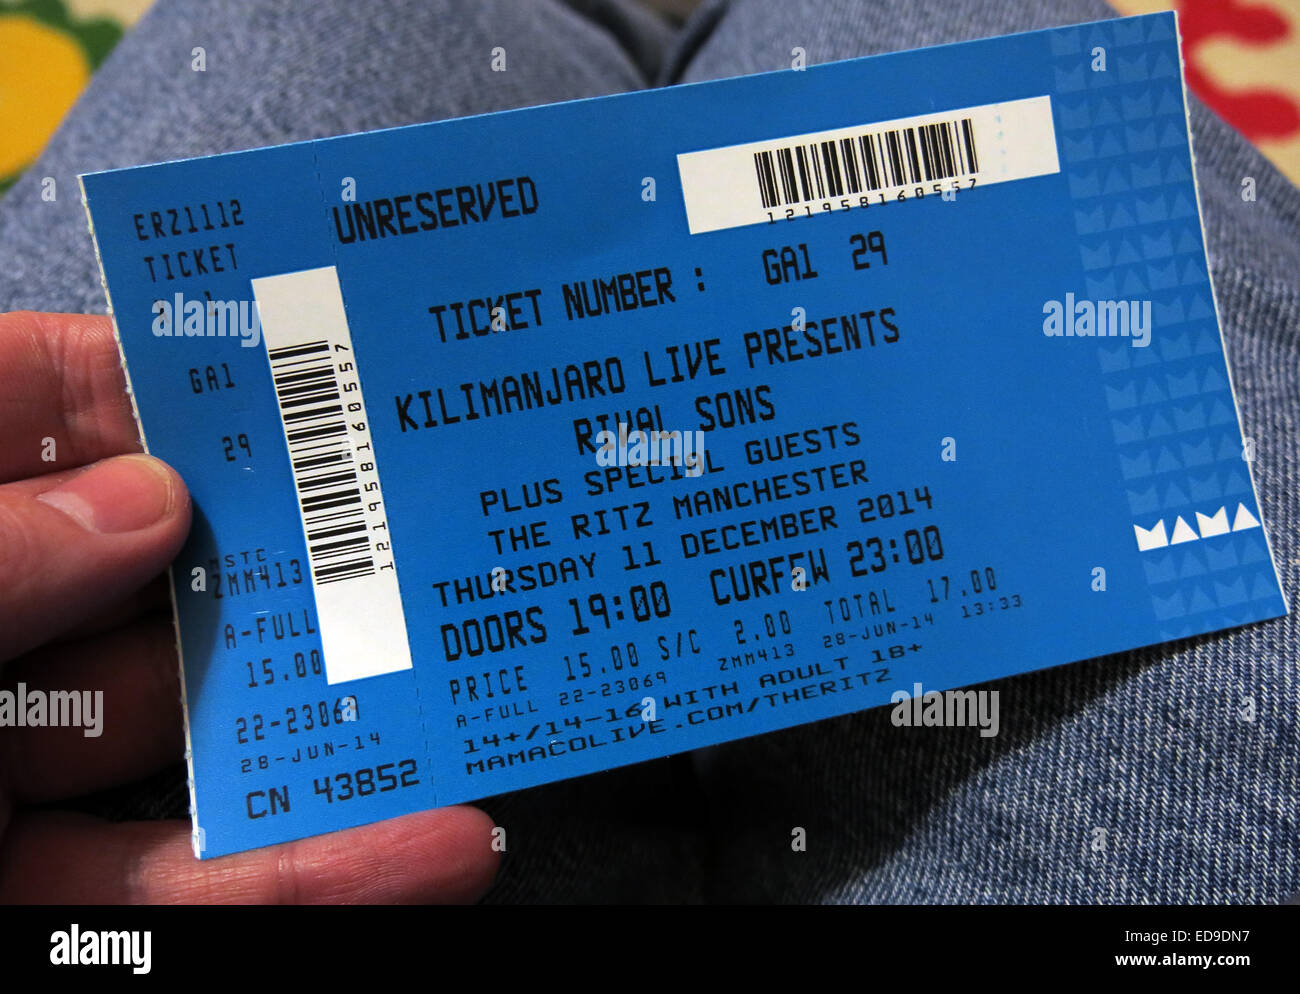 Rival sons blue gig ticket Manchester Ritz 2014, England, UK held in a hand - Stock Image